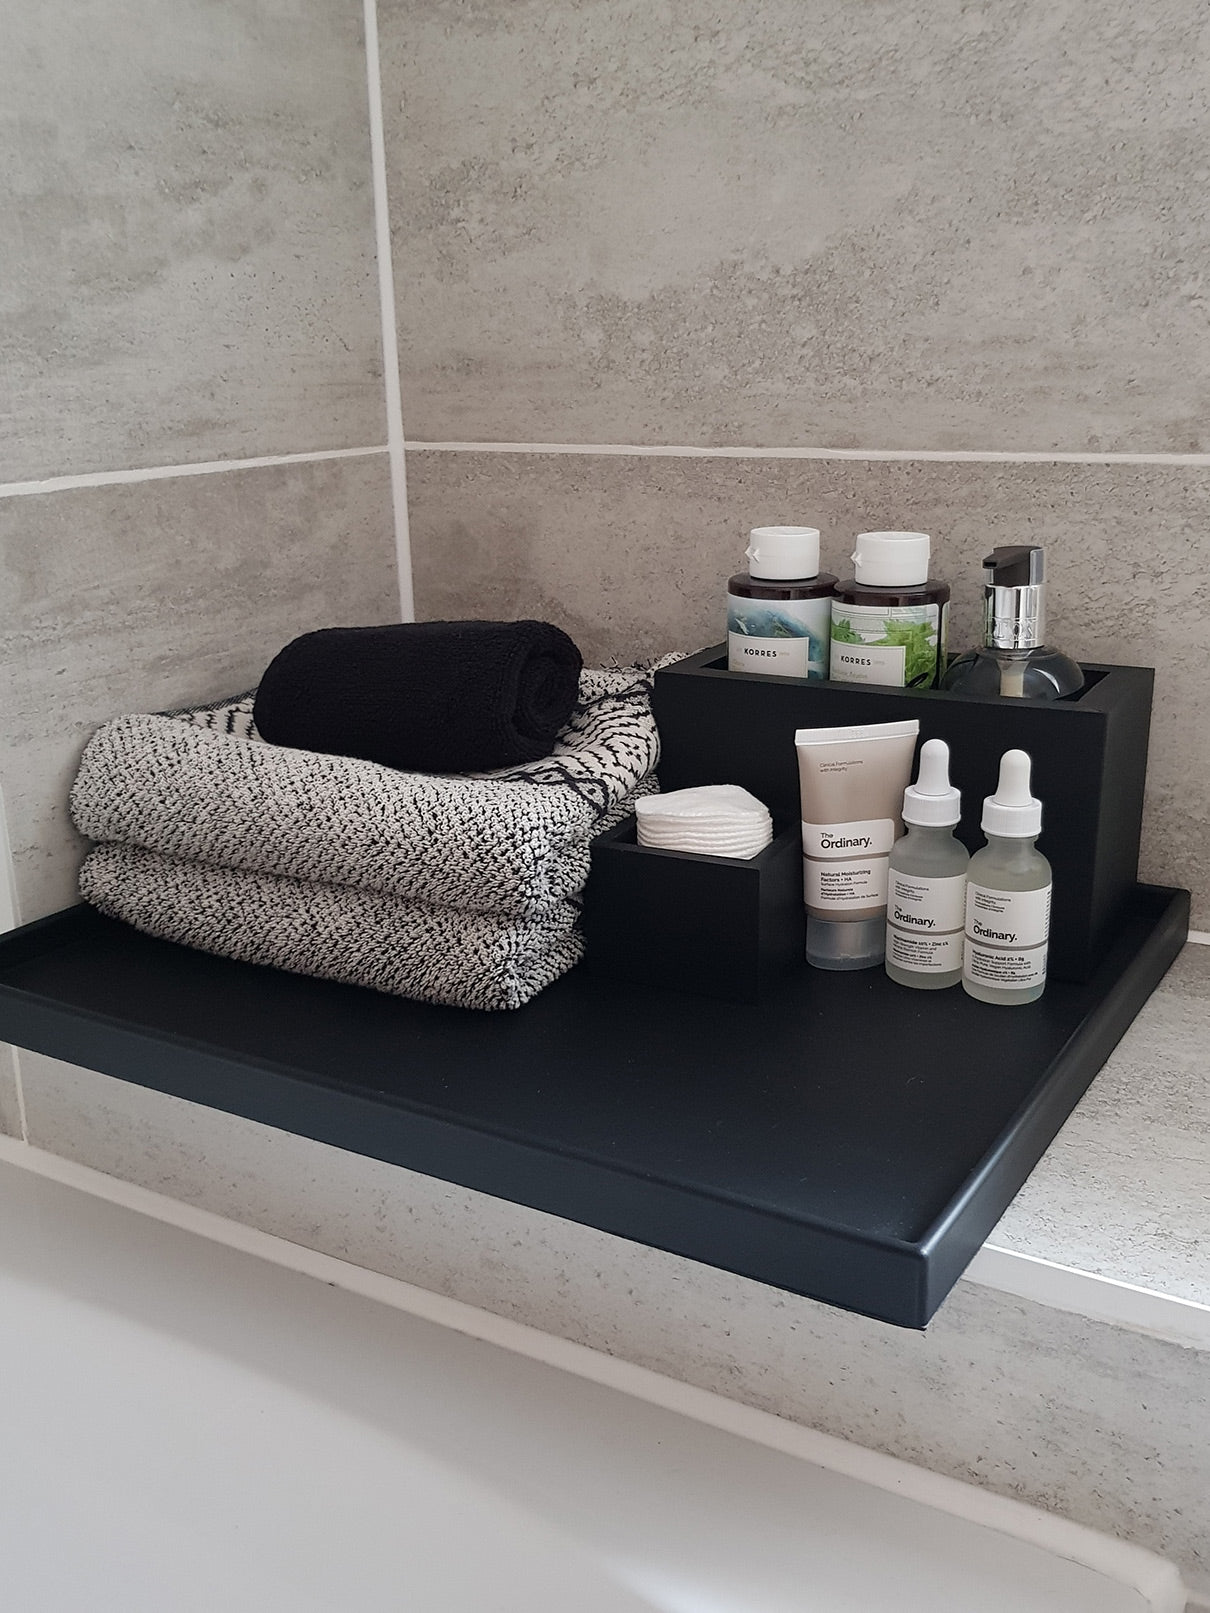 Bathroom accessories tray with towels and wellbeing products